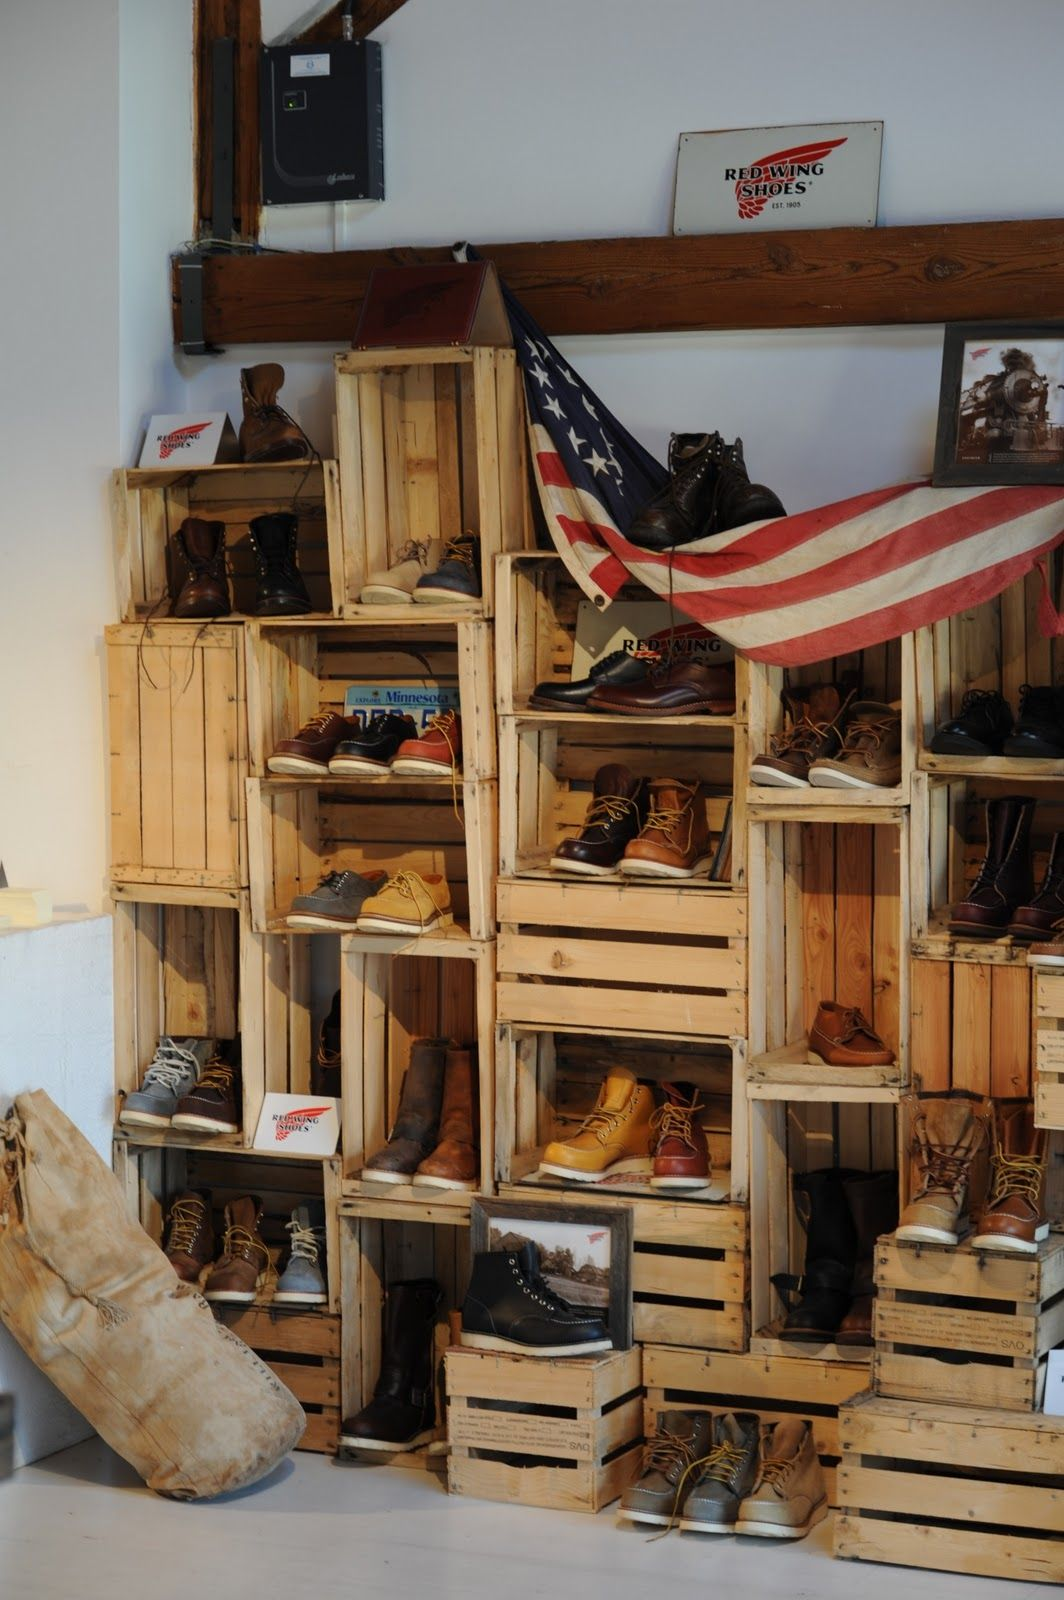 Great Display! Great Boots!